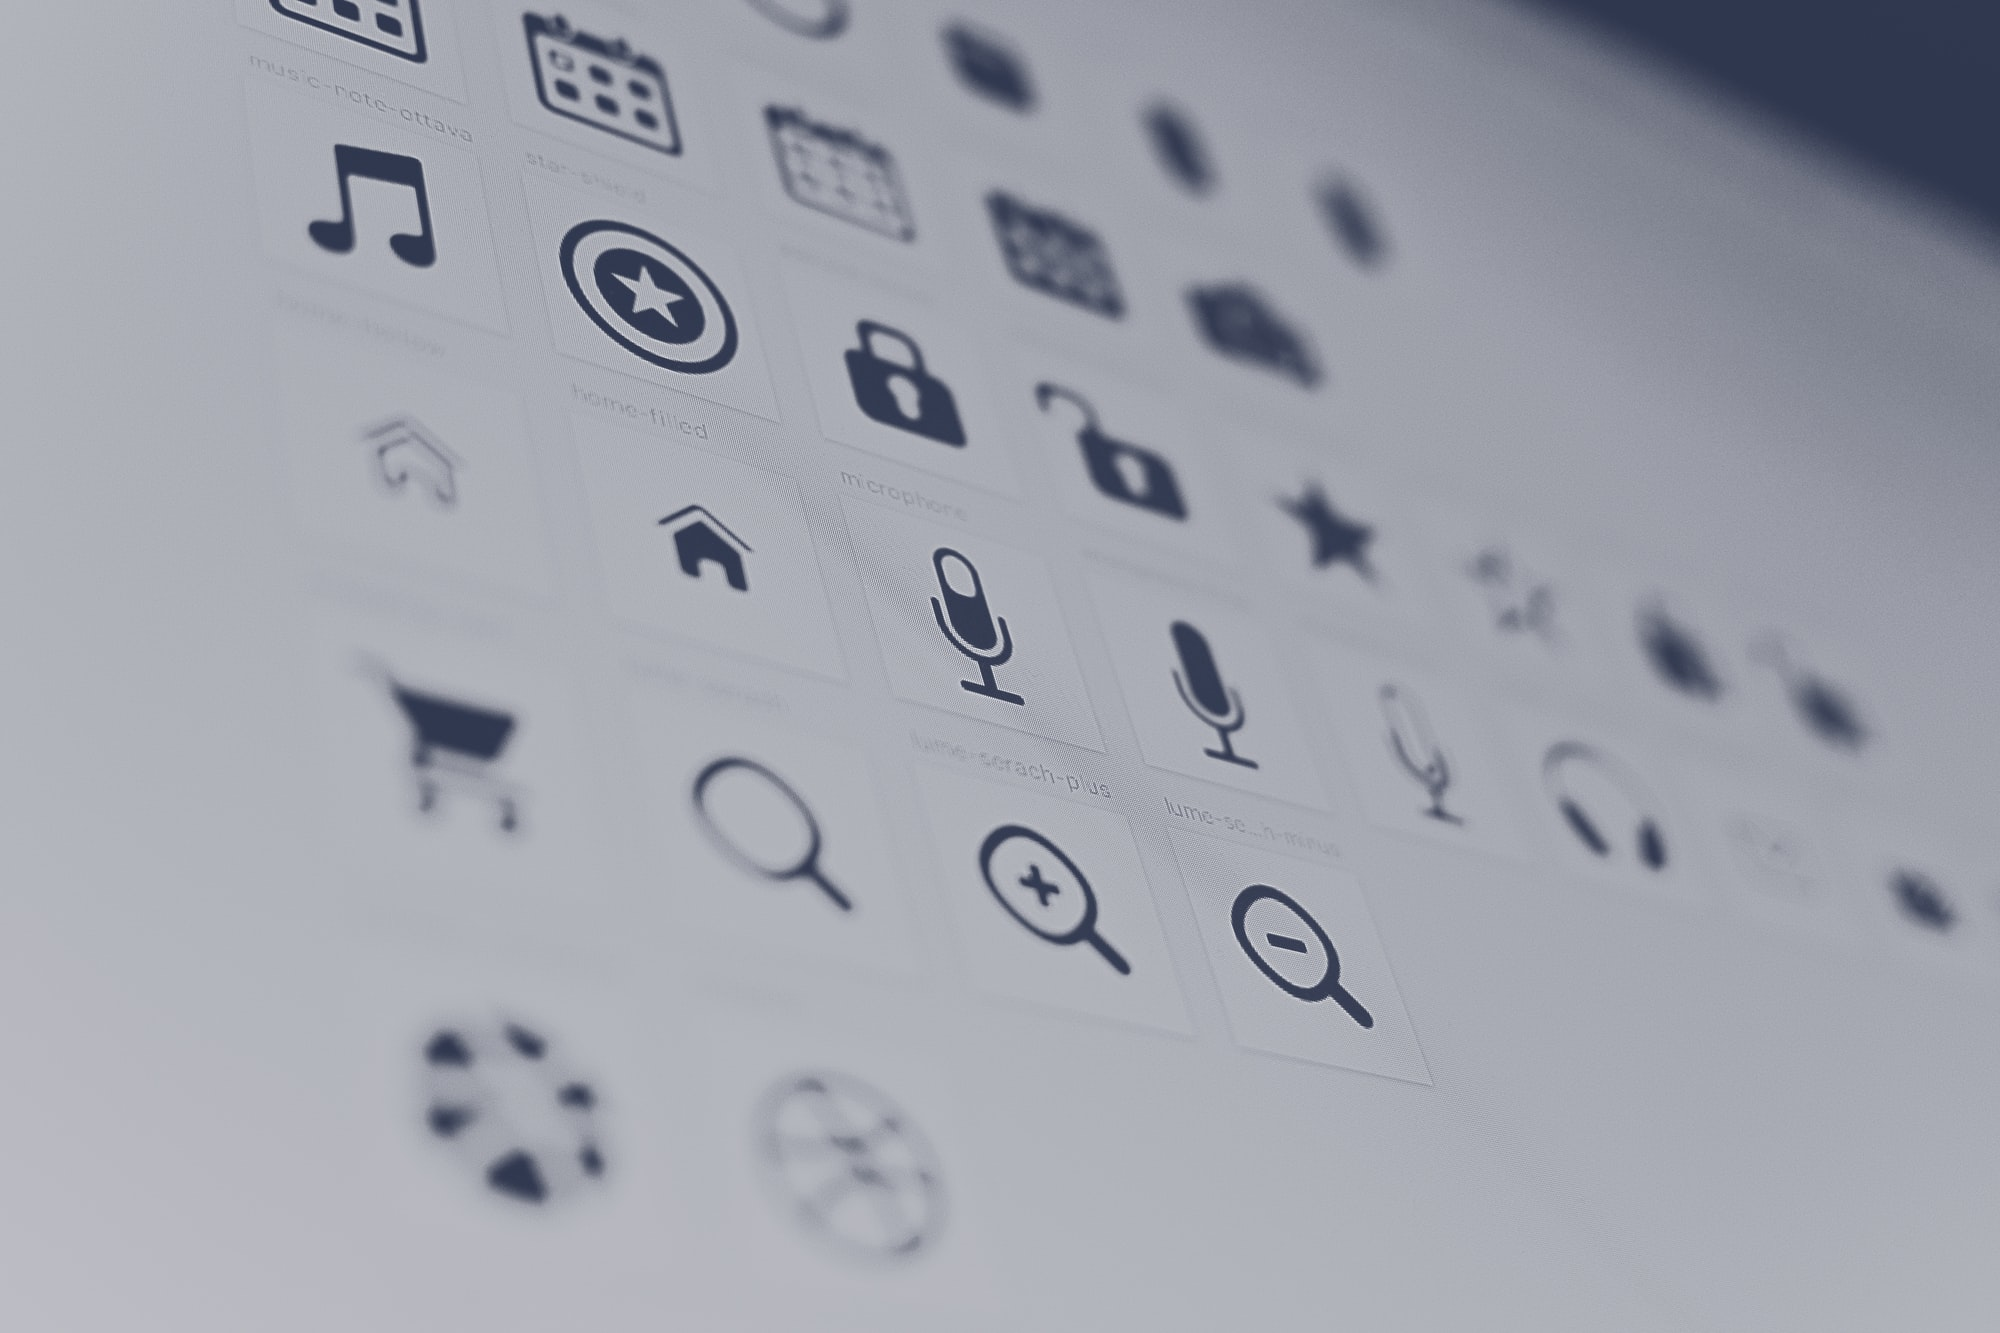 How to Add Font Awesome Icons to Your Buttons